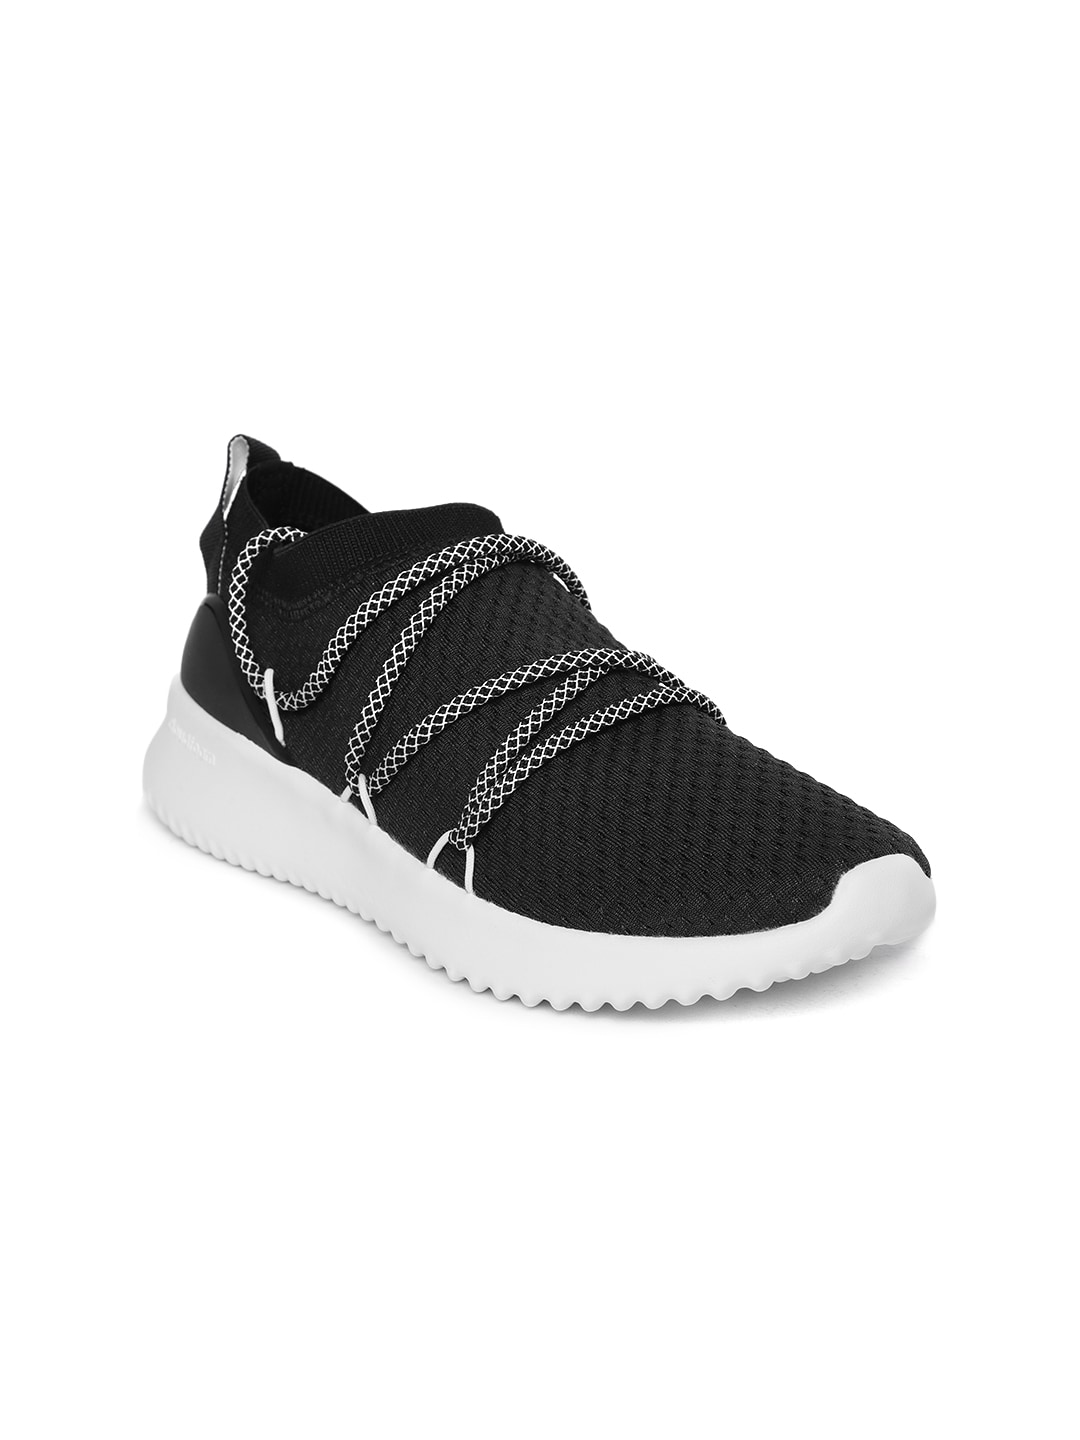 c4df759737c630 Adidas Black Basketball Shoes - Buy Adidas Black Basketball Shoes online in  India